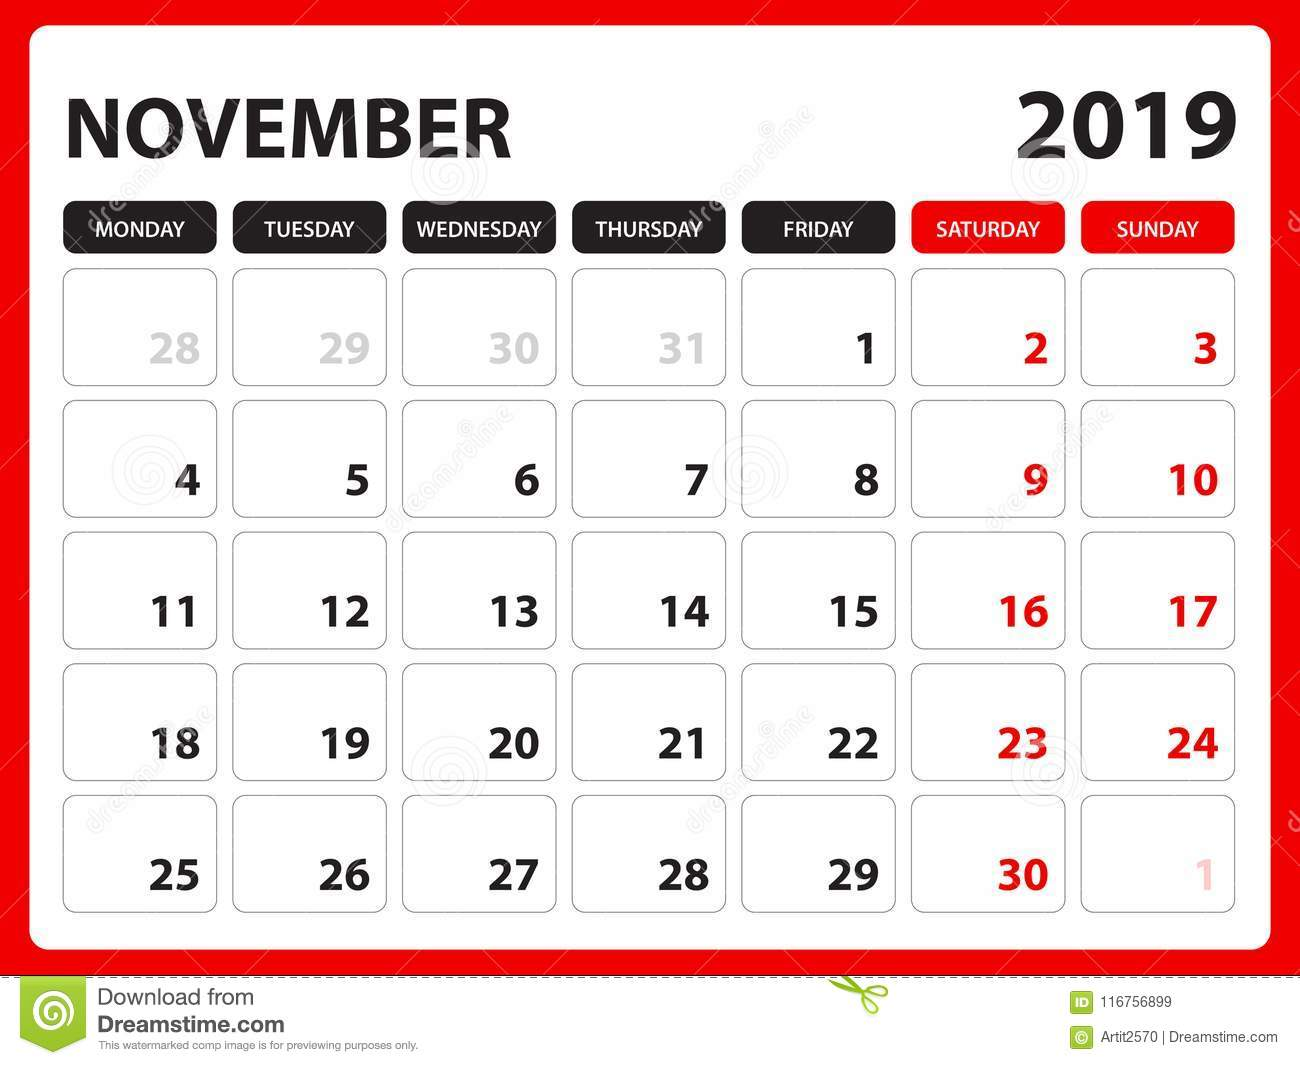 Desk Calendar For NOVEMBER 2019 Template, Printable ...